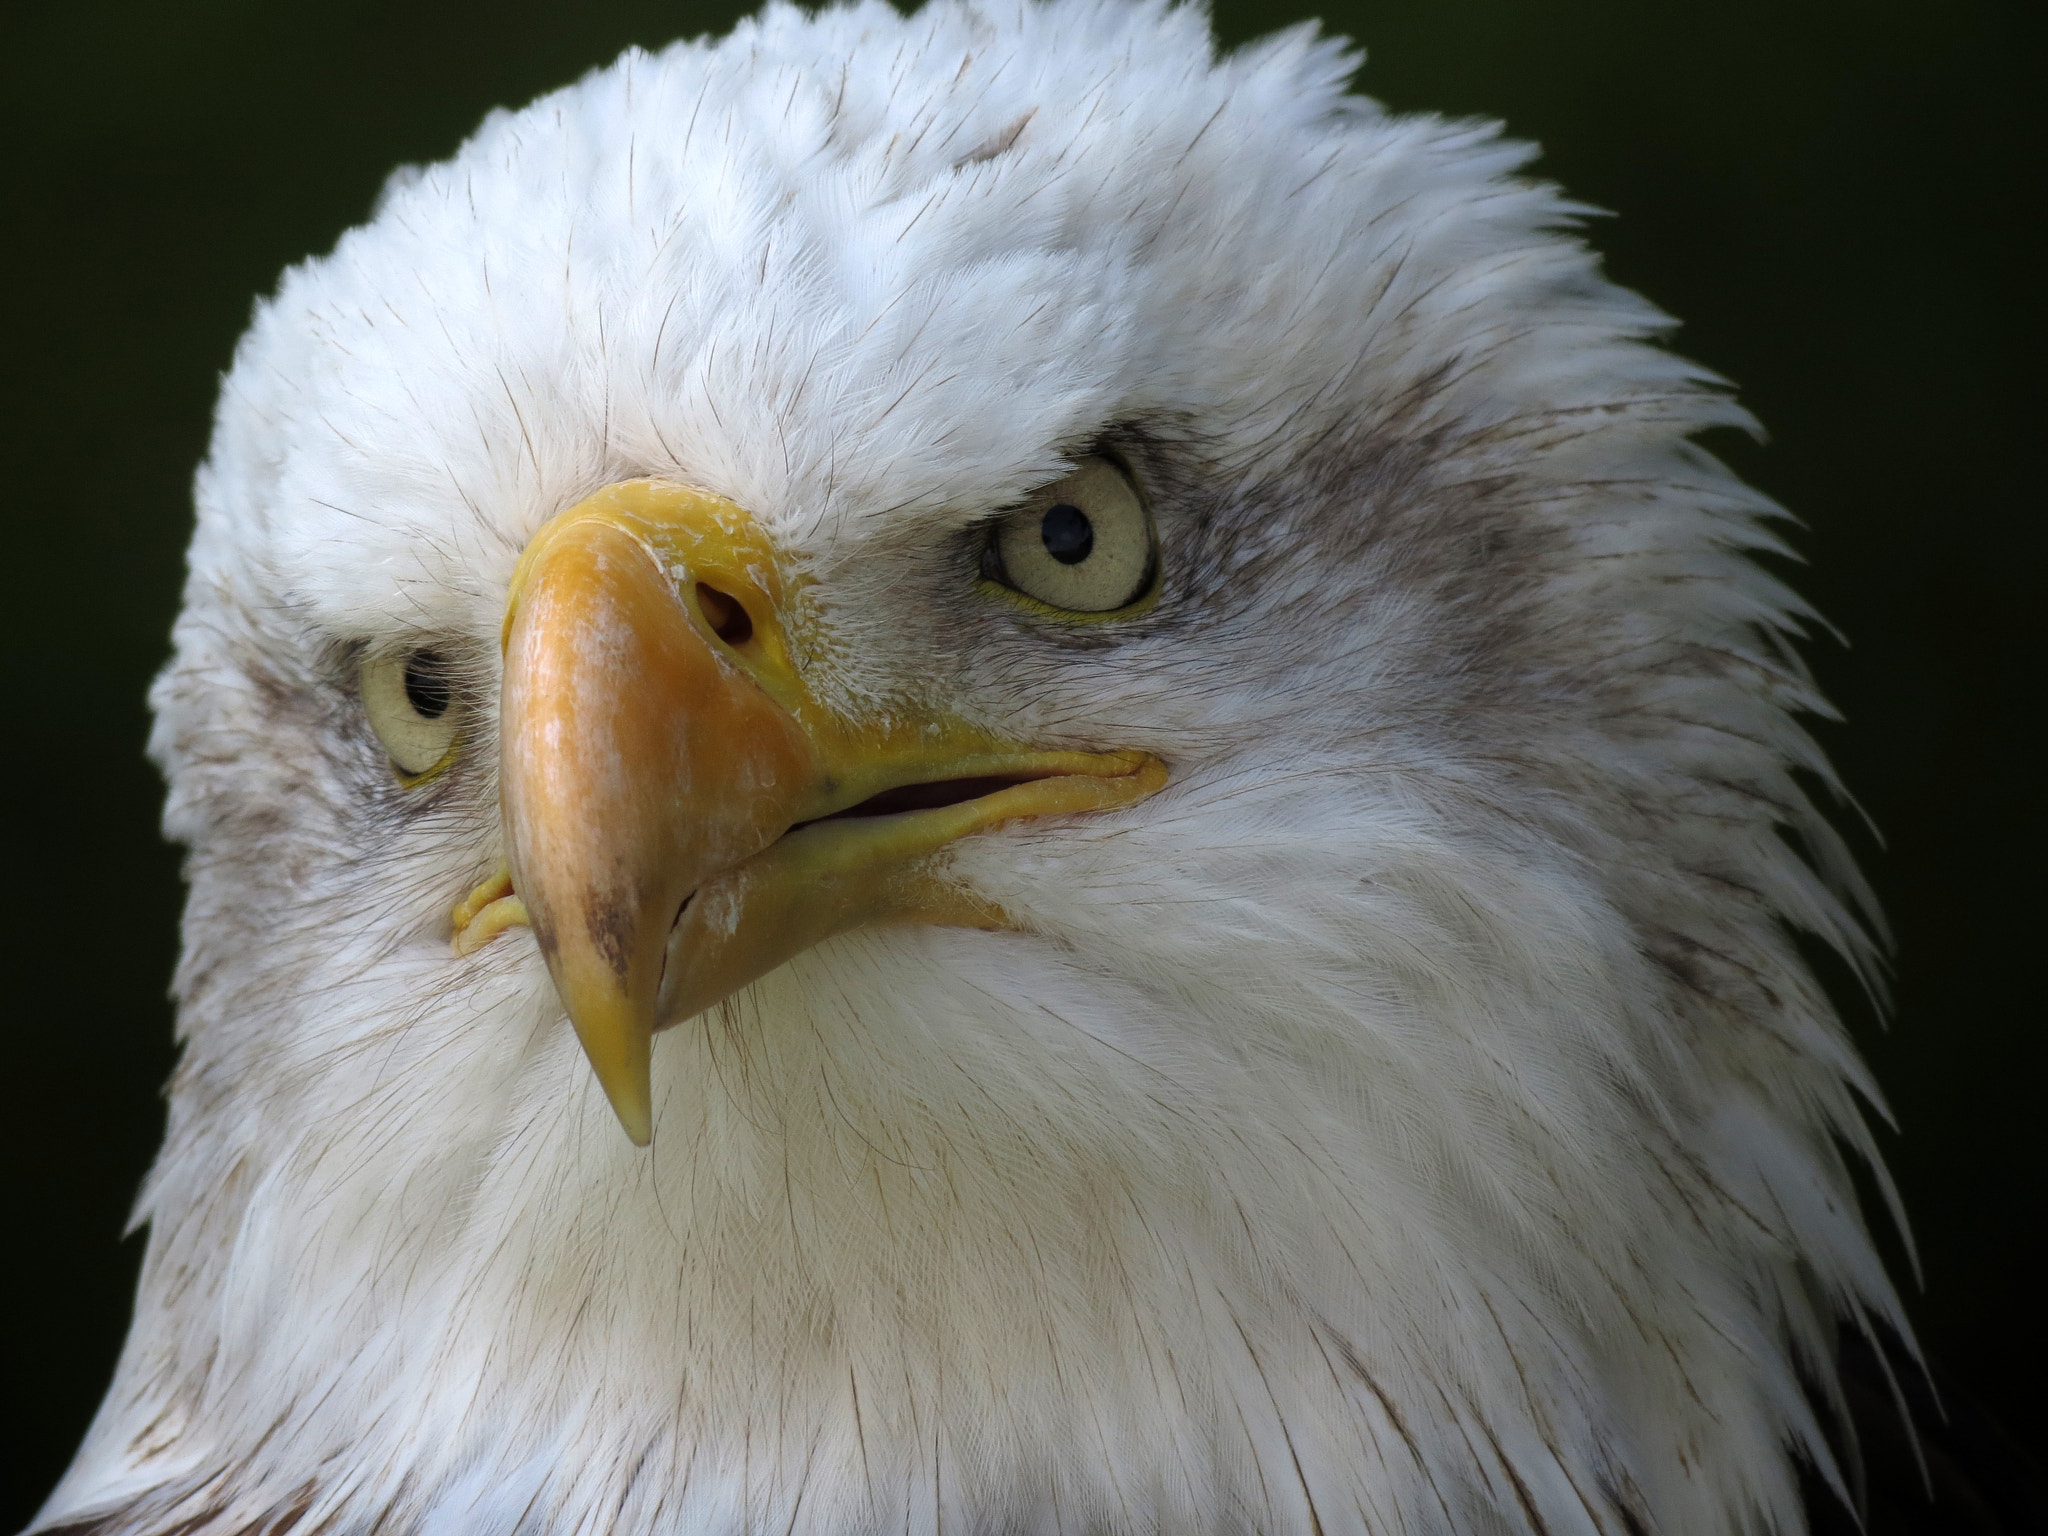 Photograph American bald eagle by Anne Slater on 500px